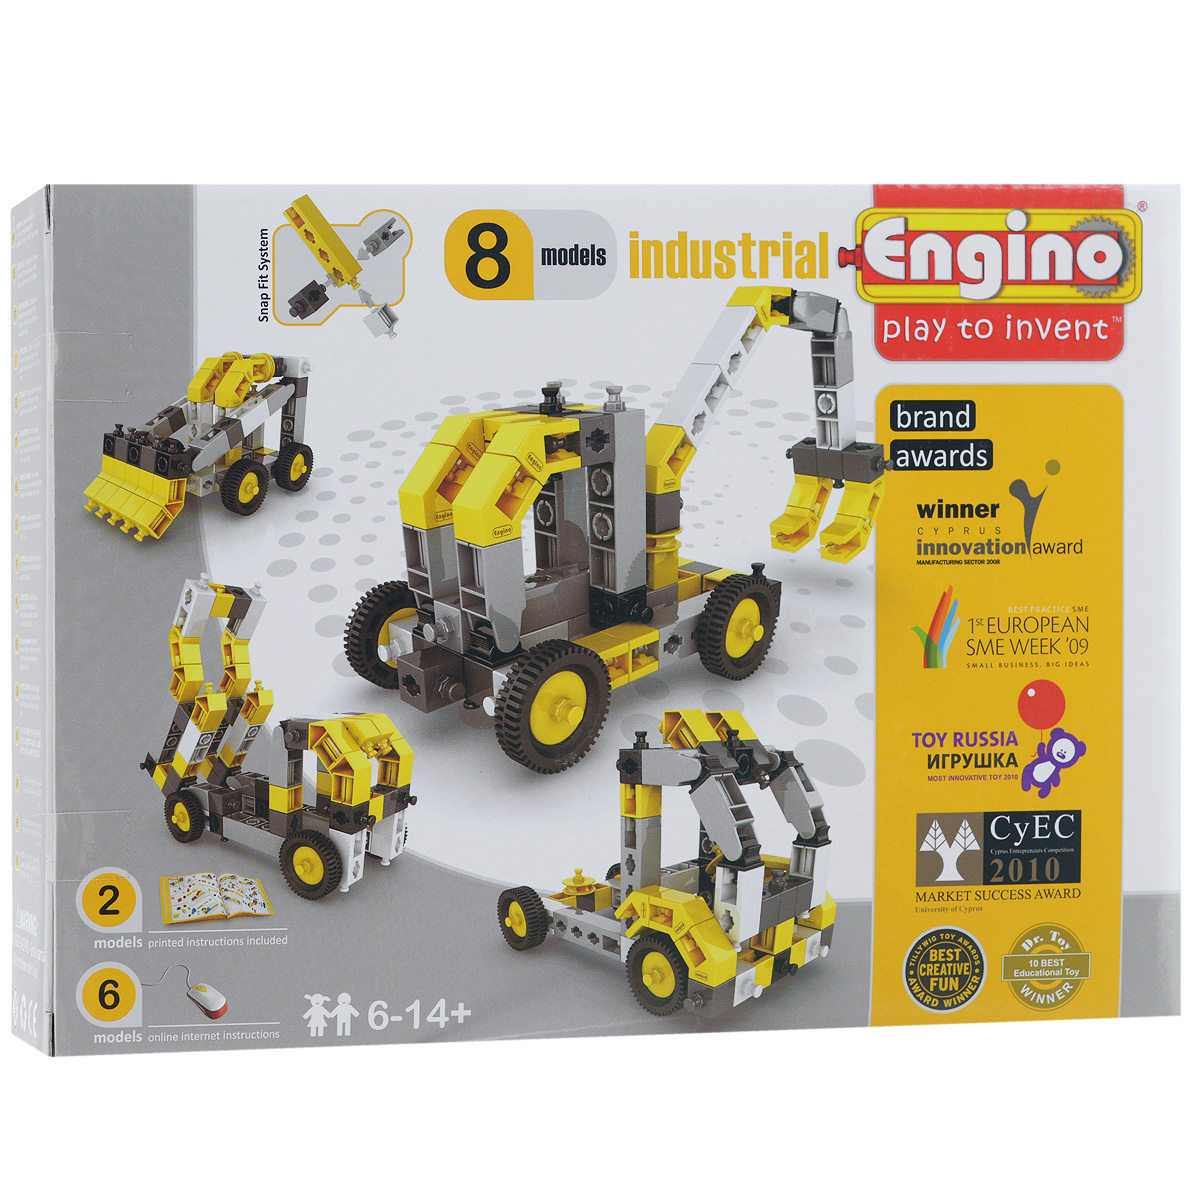 Engino Конструктор Industrial 8 models